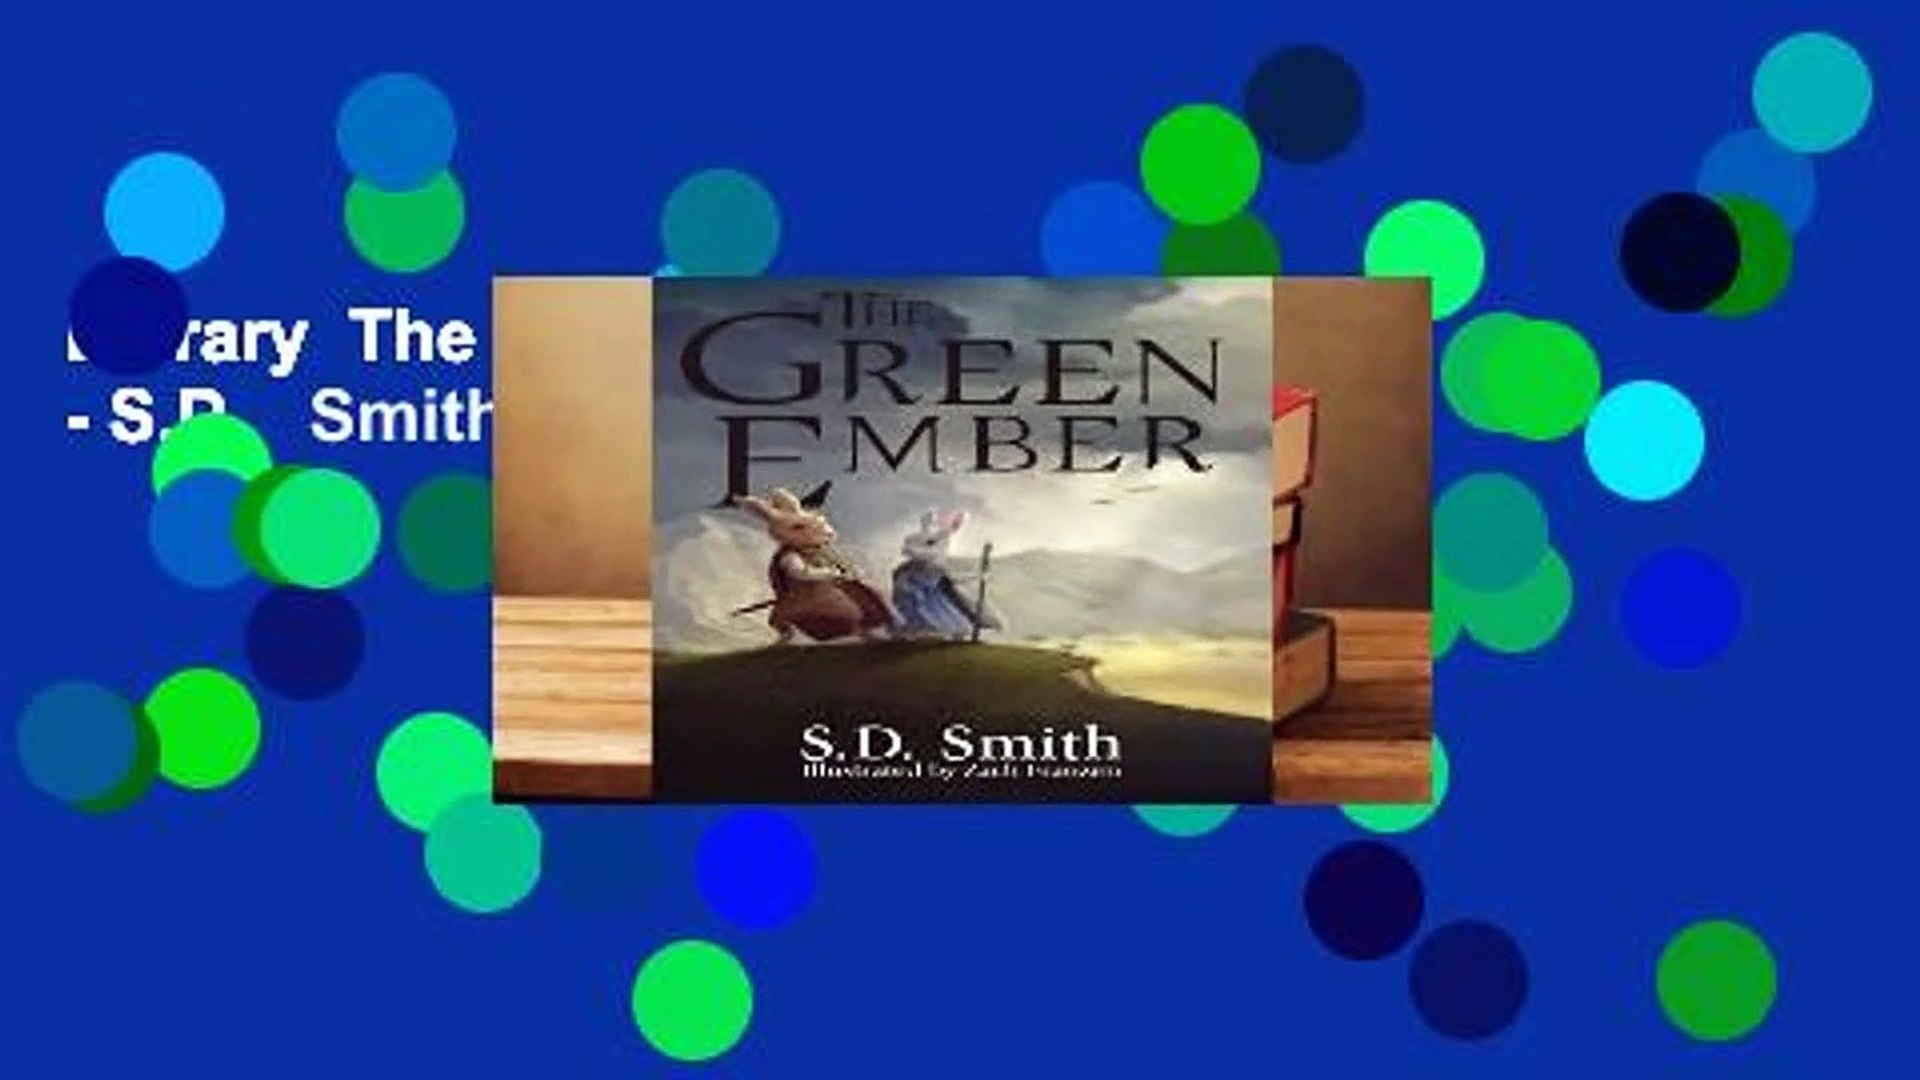 Library  The Green Ember - S.D.   Smith